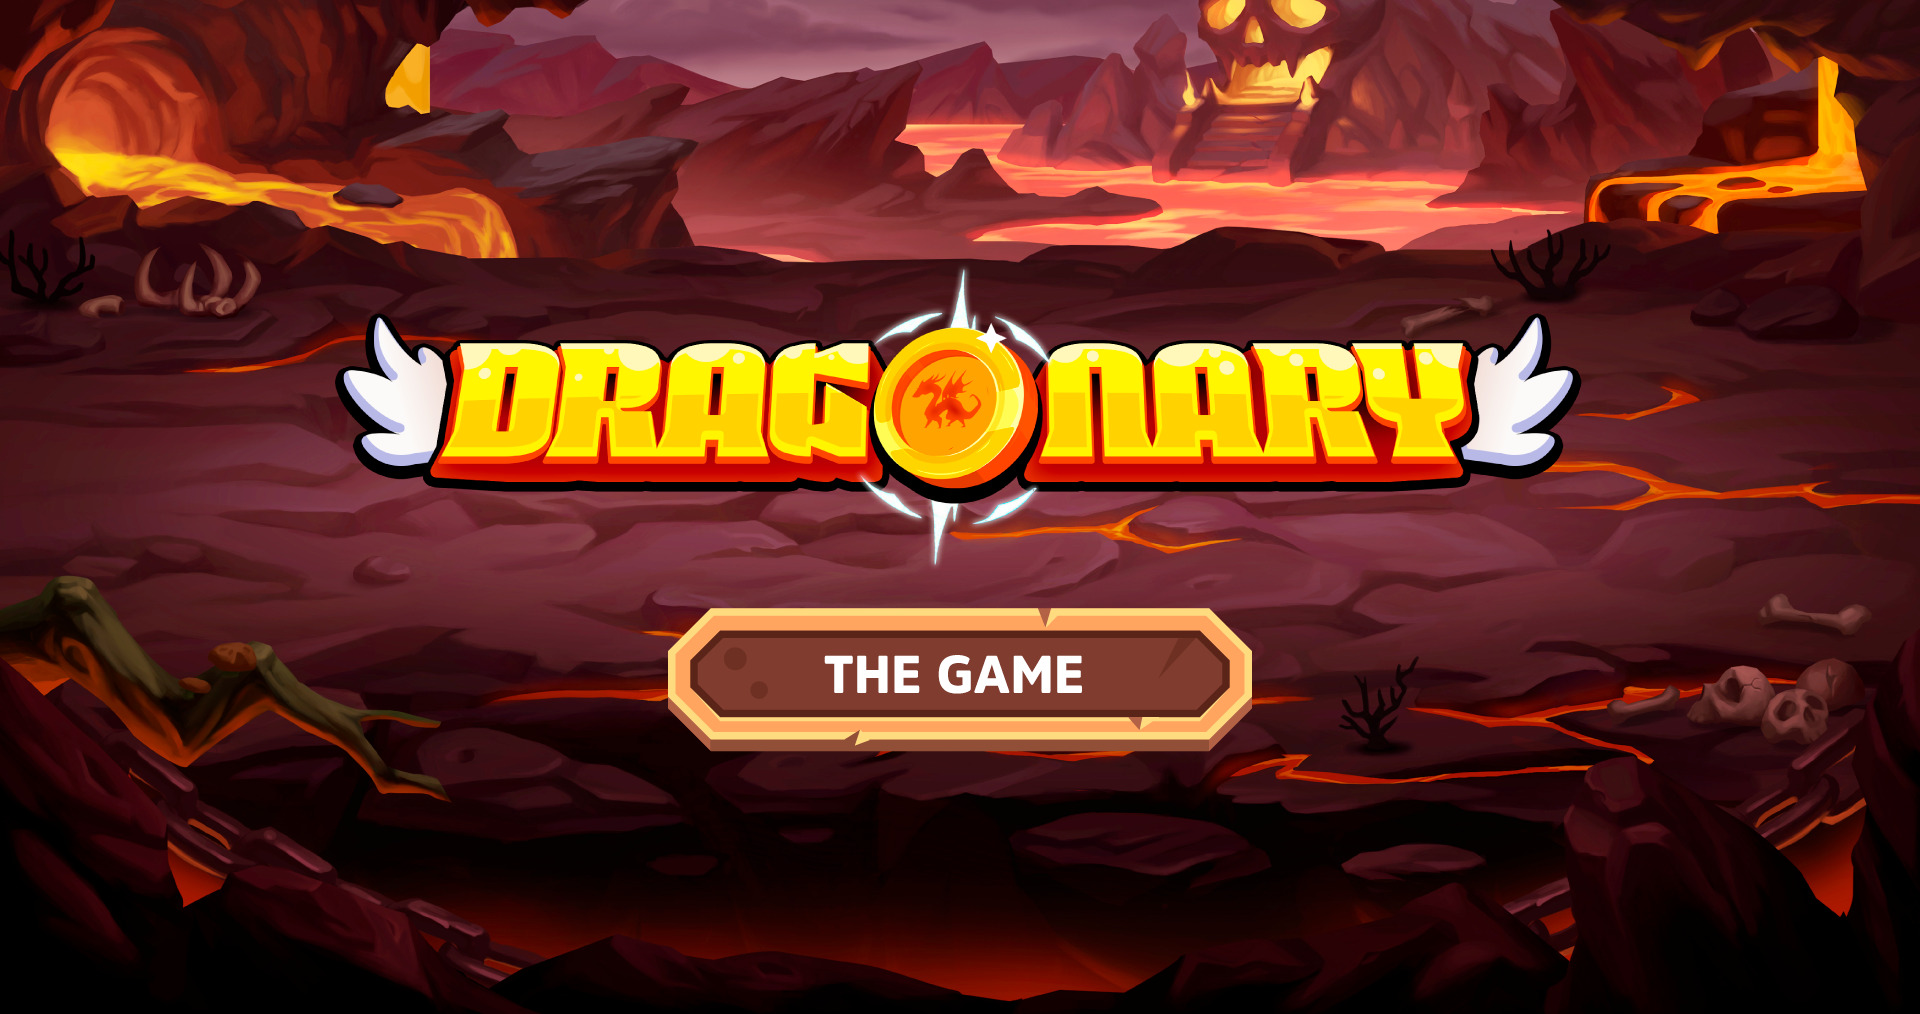 How to Earn in Dragonary and How Much (Free-to-Play NFT Game)